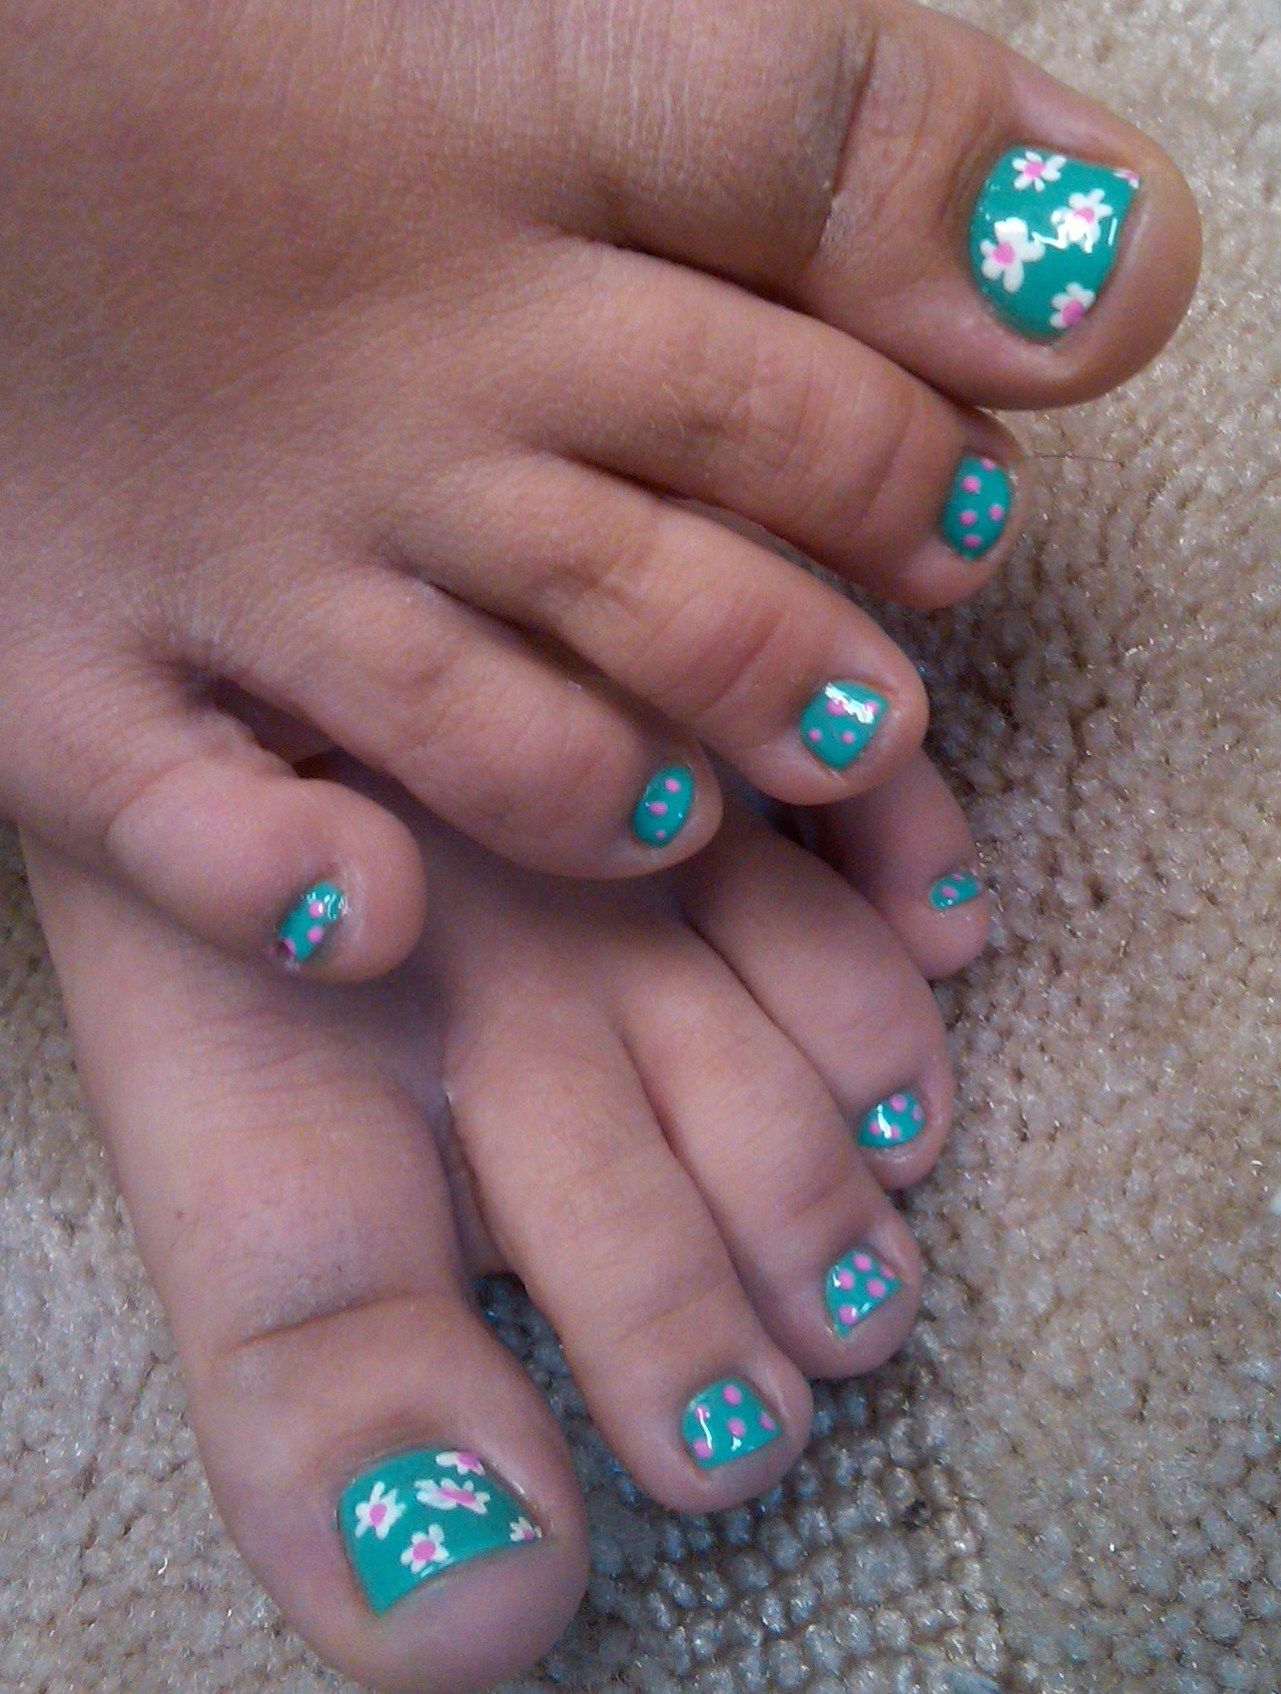 Teal daisy pedi toes ! Nails by Alicia Rock at A Touch of Joy ...